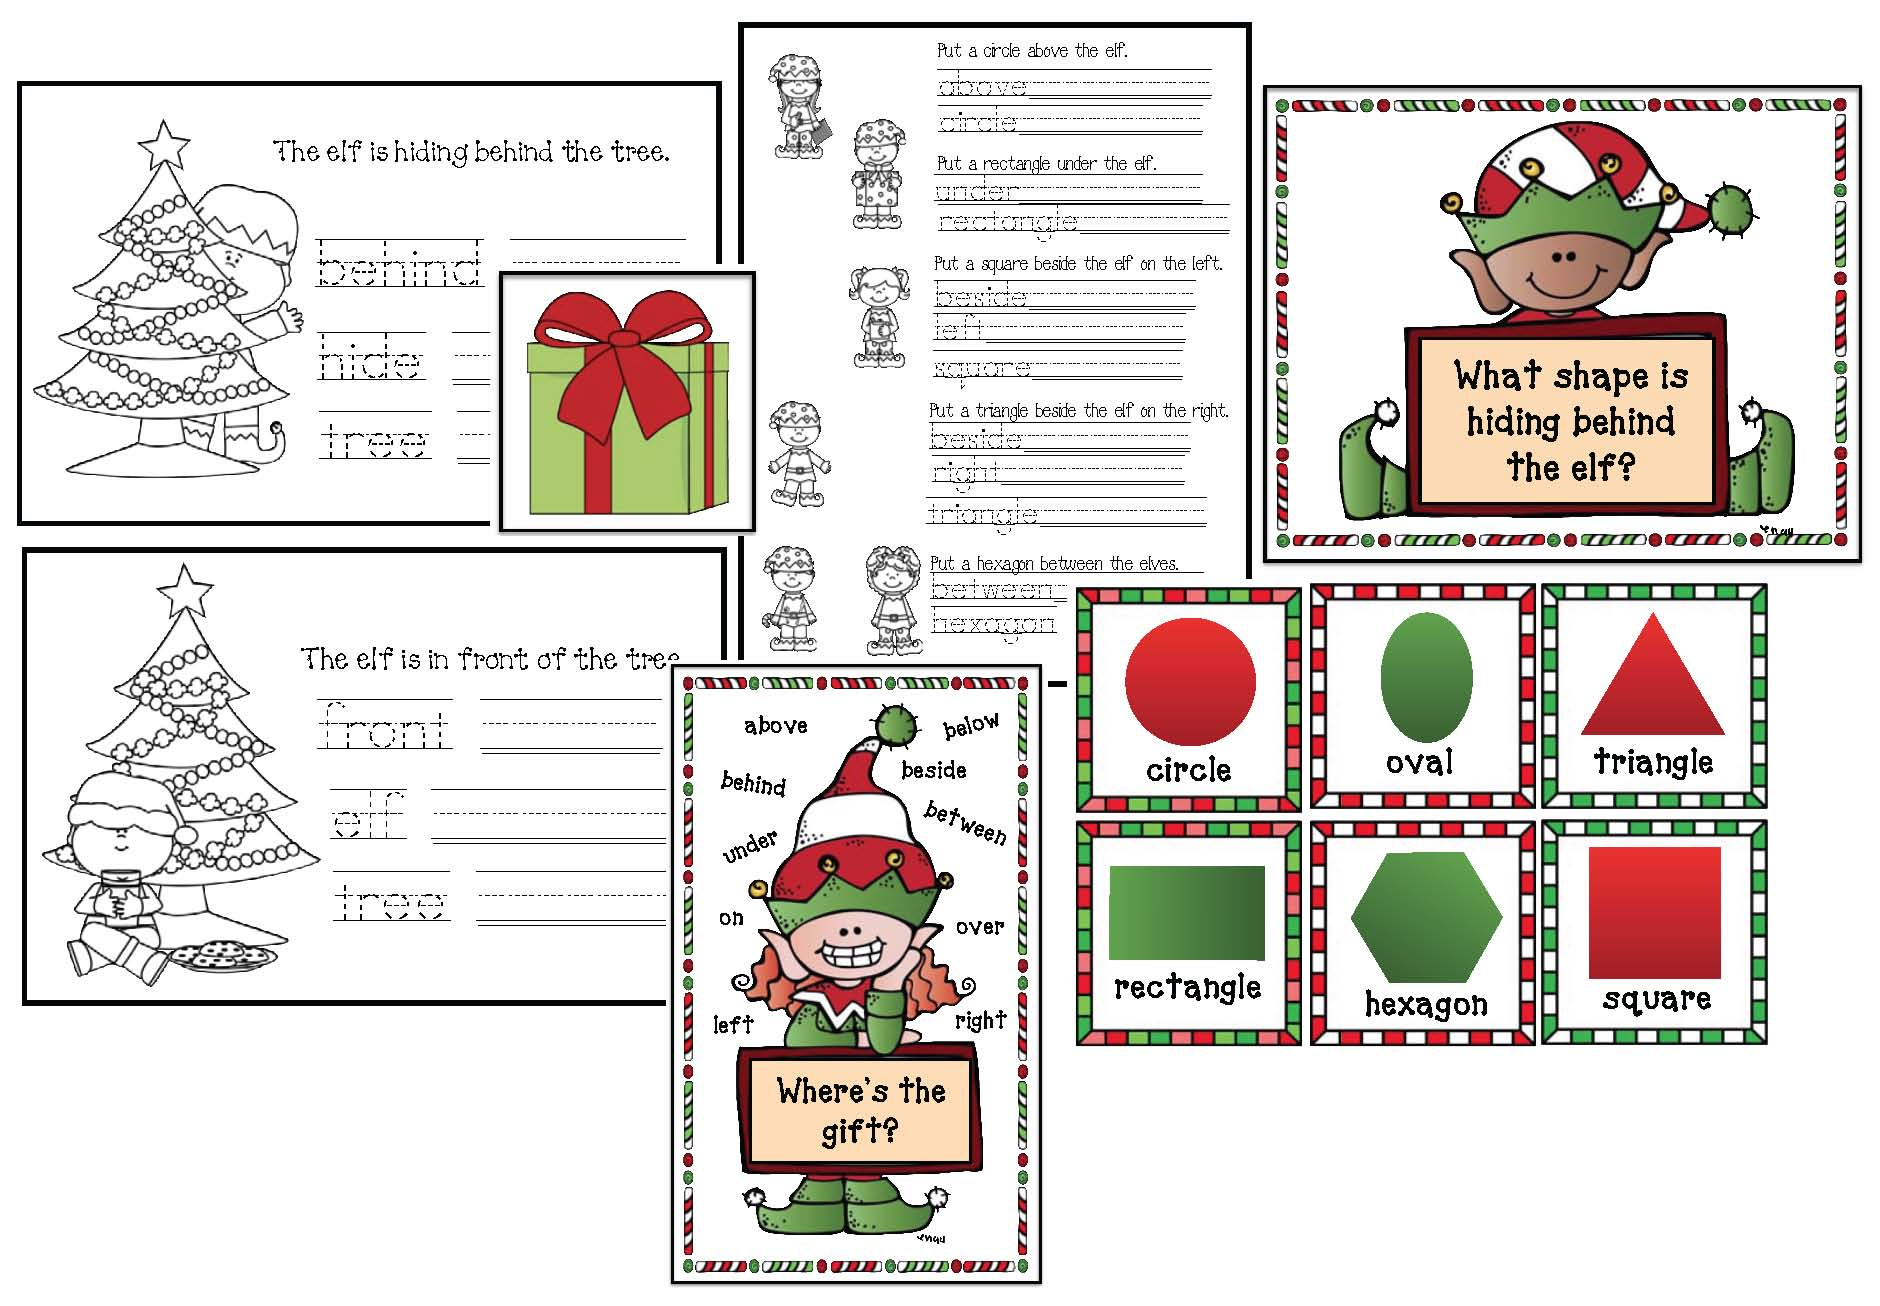 elf on a shelf activities, elf help, 2D shape activities, 2D shape games, alphabet games, alphabet assessments, alphabet activities, behavior modification activities, classroom management ideas, alphabet activities, elf-abet cards, elf on a shelf games, elf on a shelf crafts